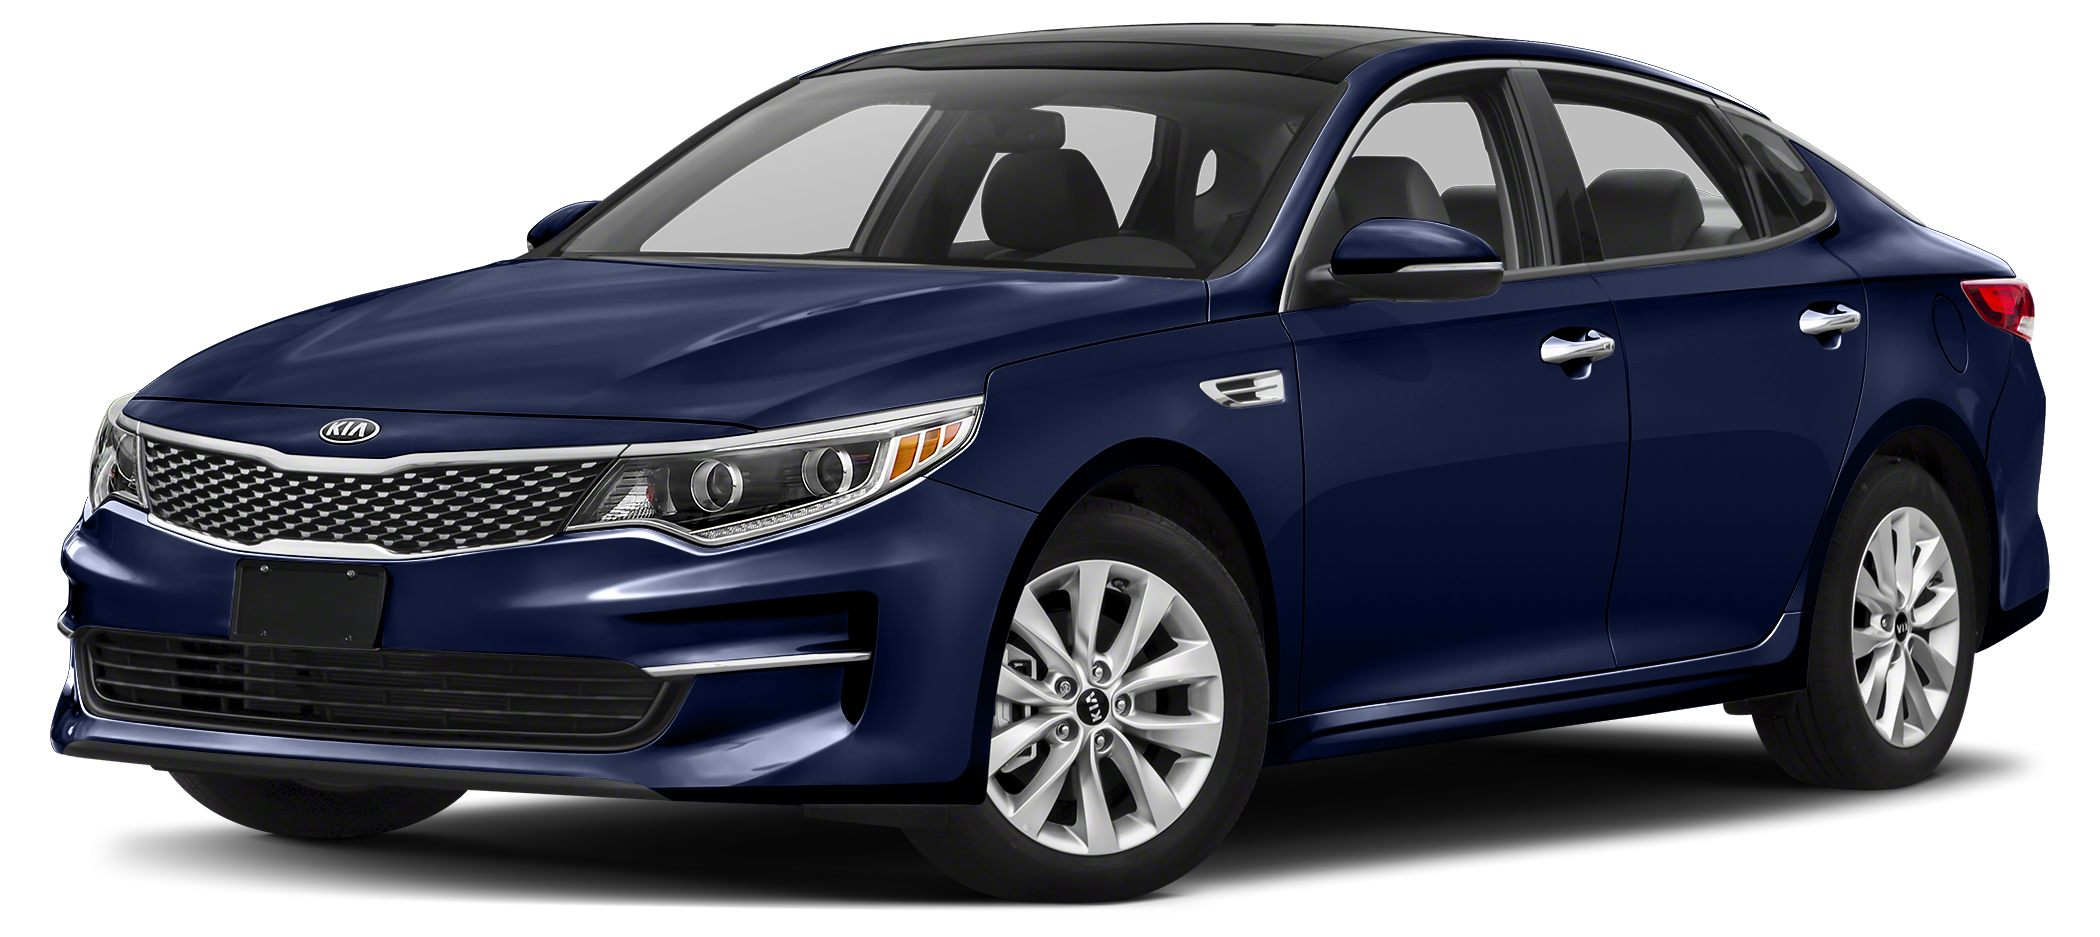 2016 Kia Optima EX This 2016 Kia Optima 4dr 4dr Sedan EX features a 24L 4 CYLINDER 4cyl Gasoline